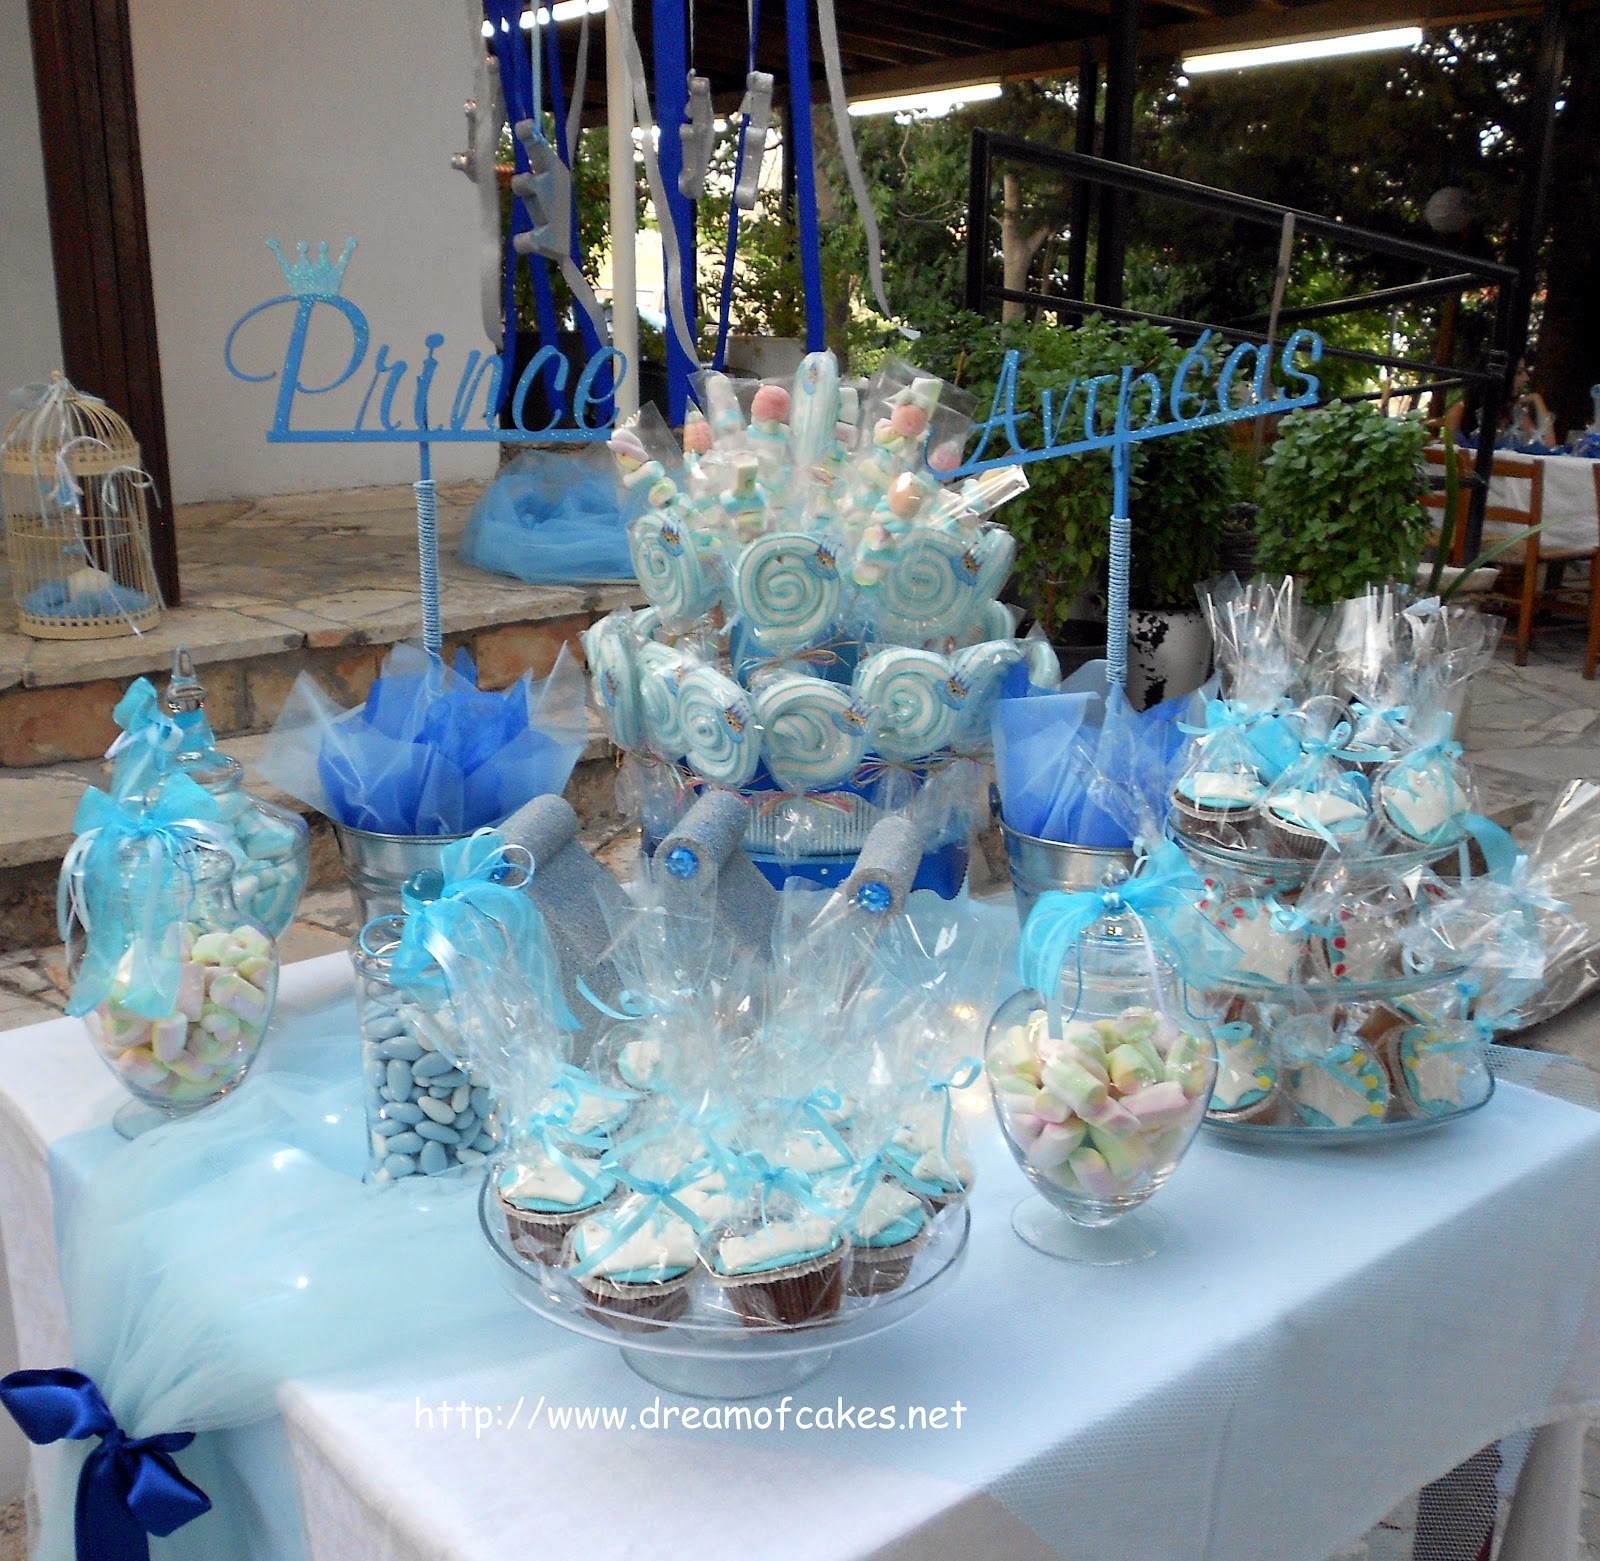 Dream of cakes little prince christening party theme - Baptism party decoration ideas ...